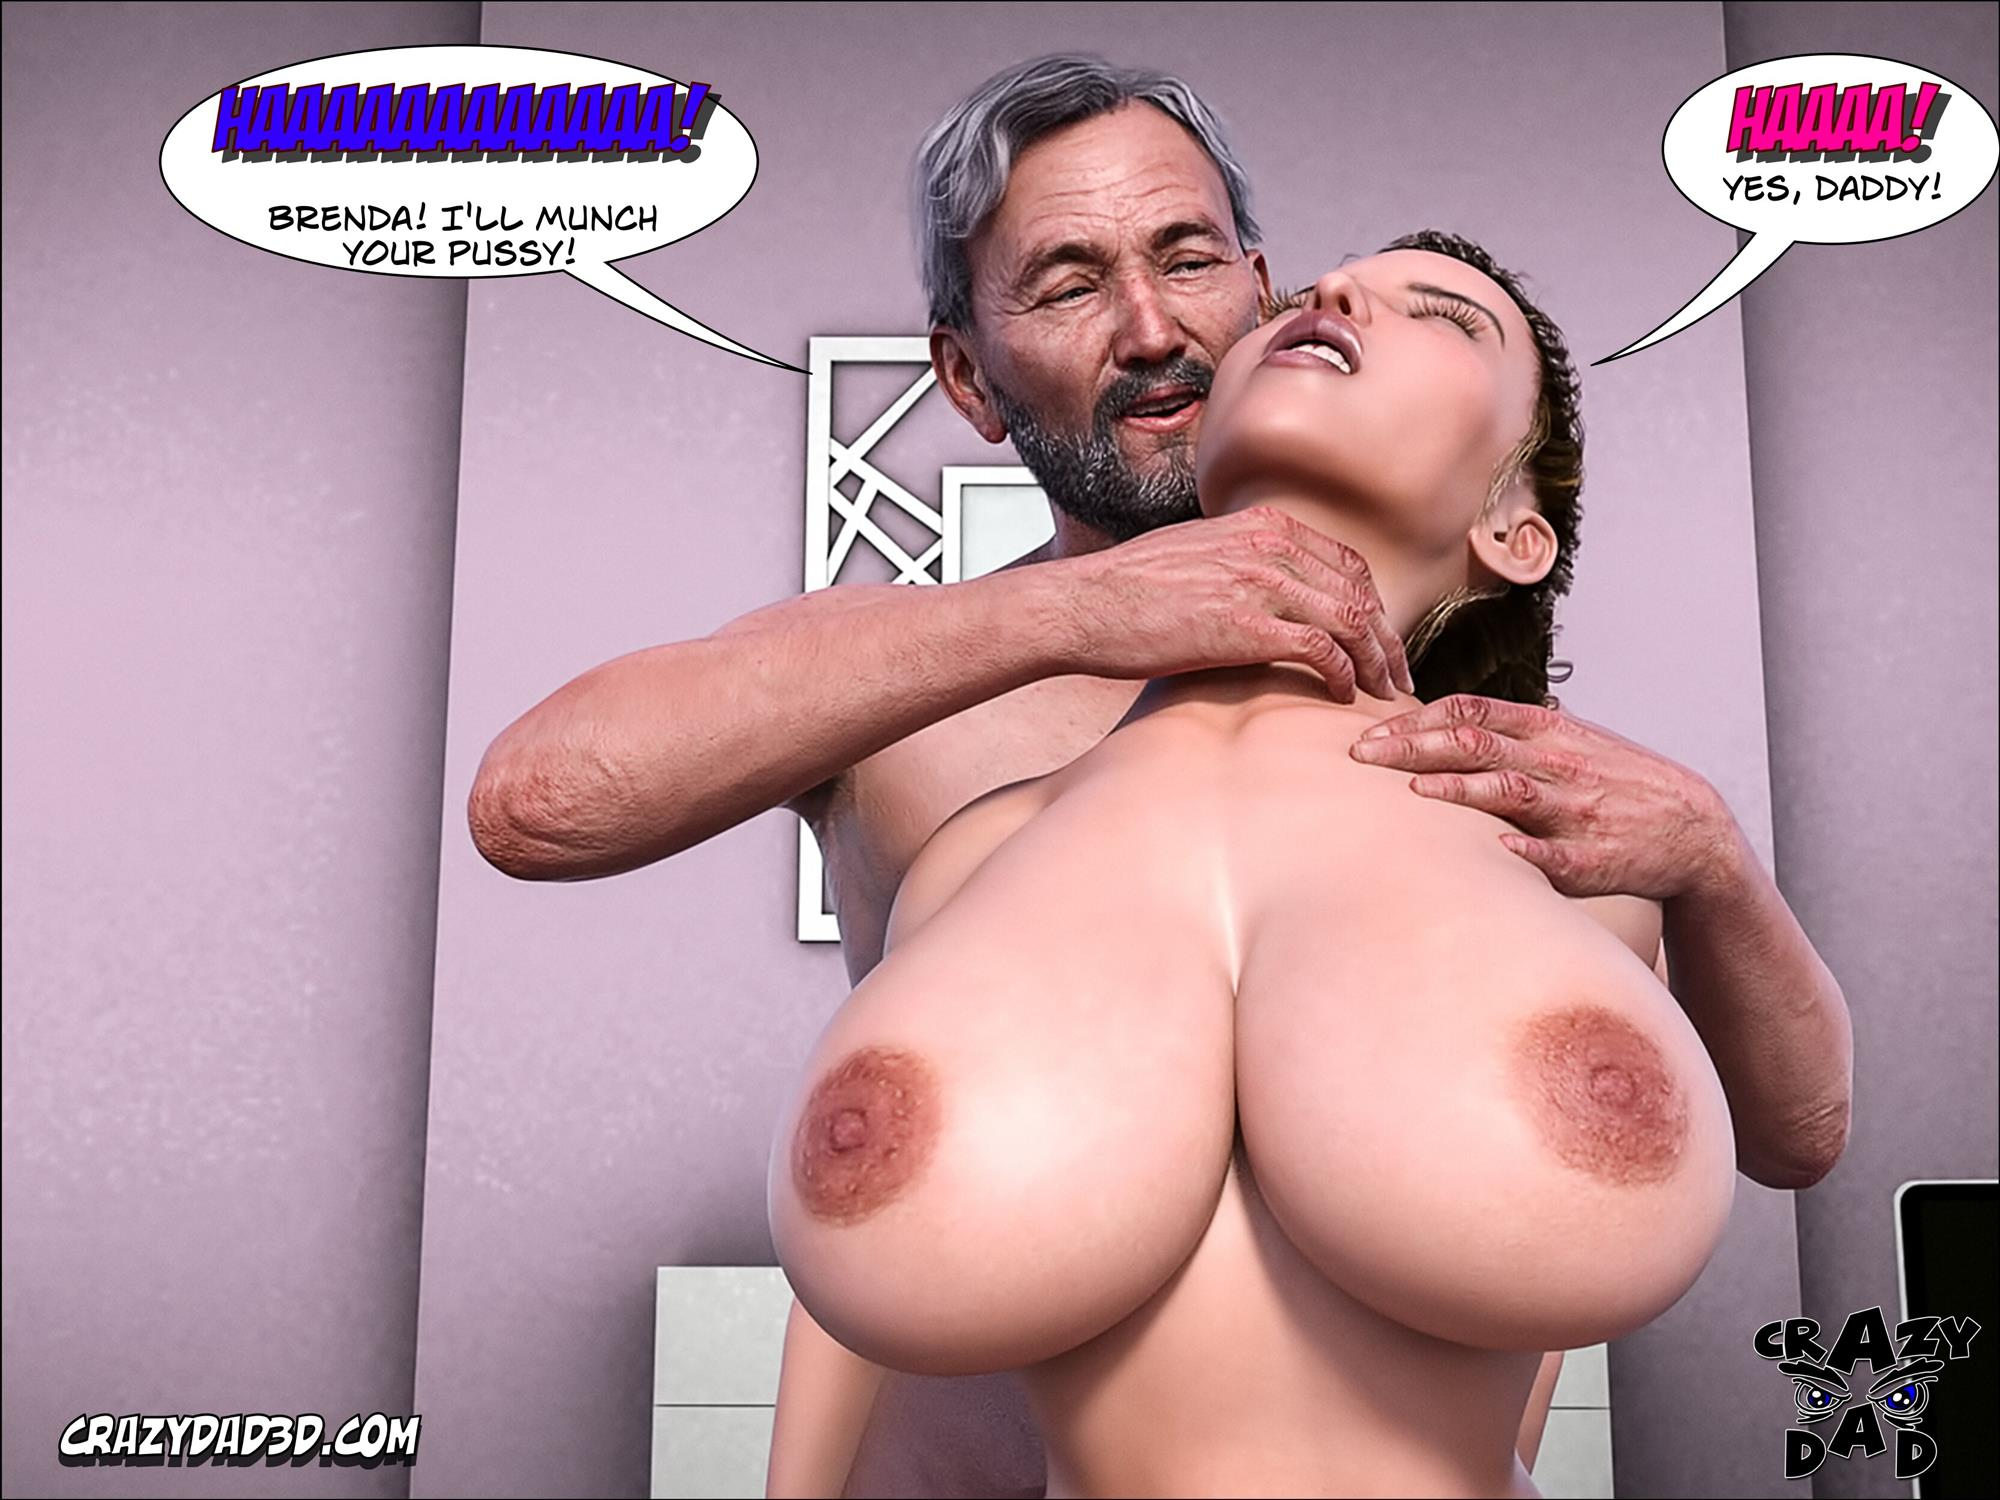 Father-in-Law at Home 10 [Crazy Dad 3D] - Foto 15